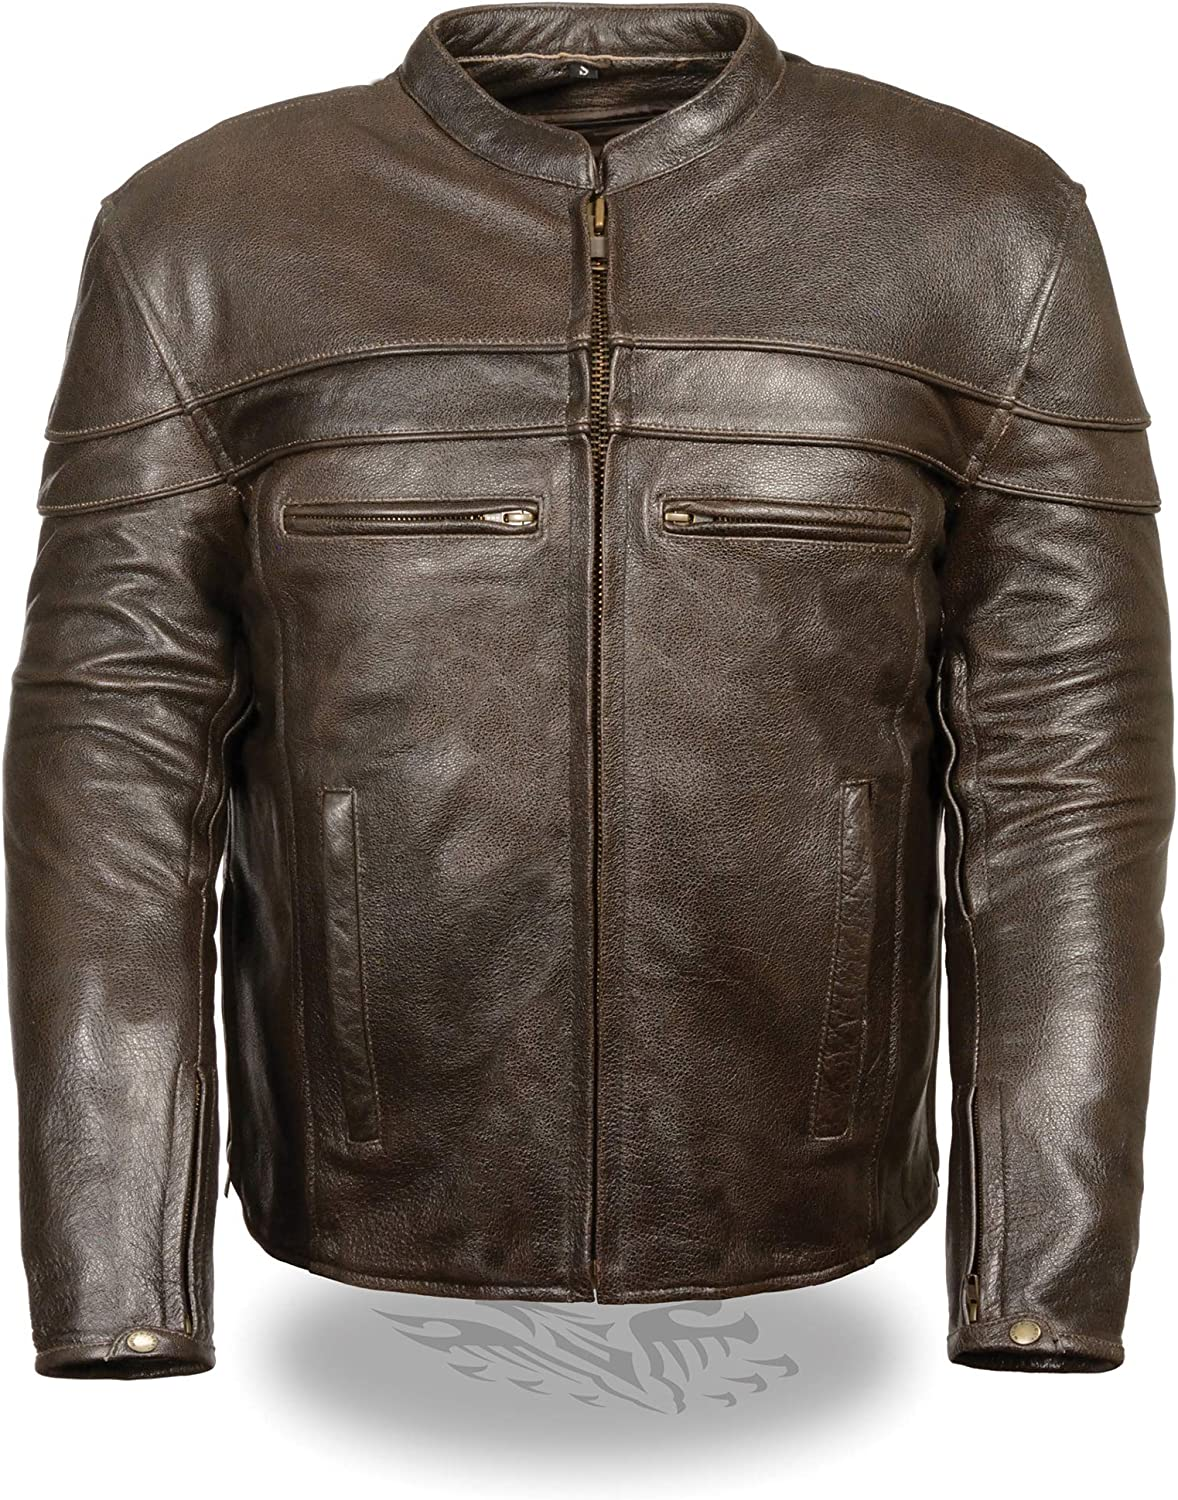 Mens Retro Leather Sporty Scooter Crossover Jacket, Brown Size XL